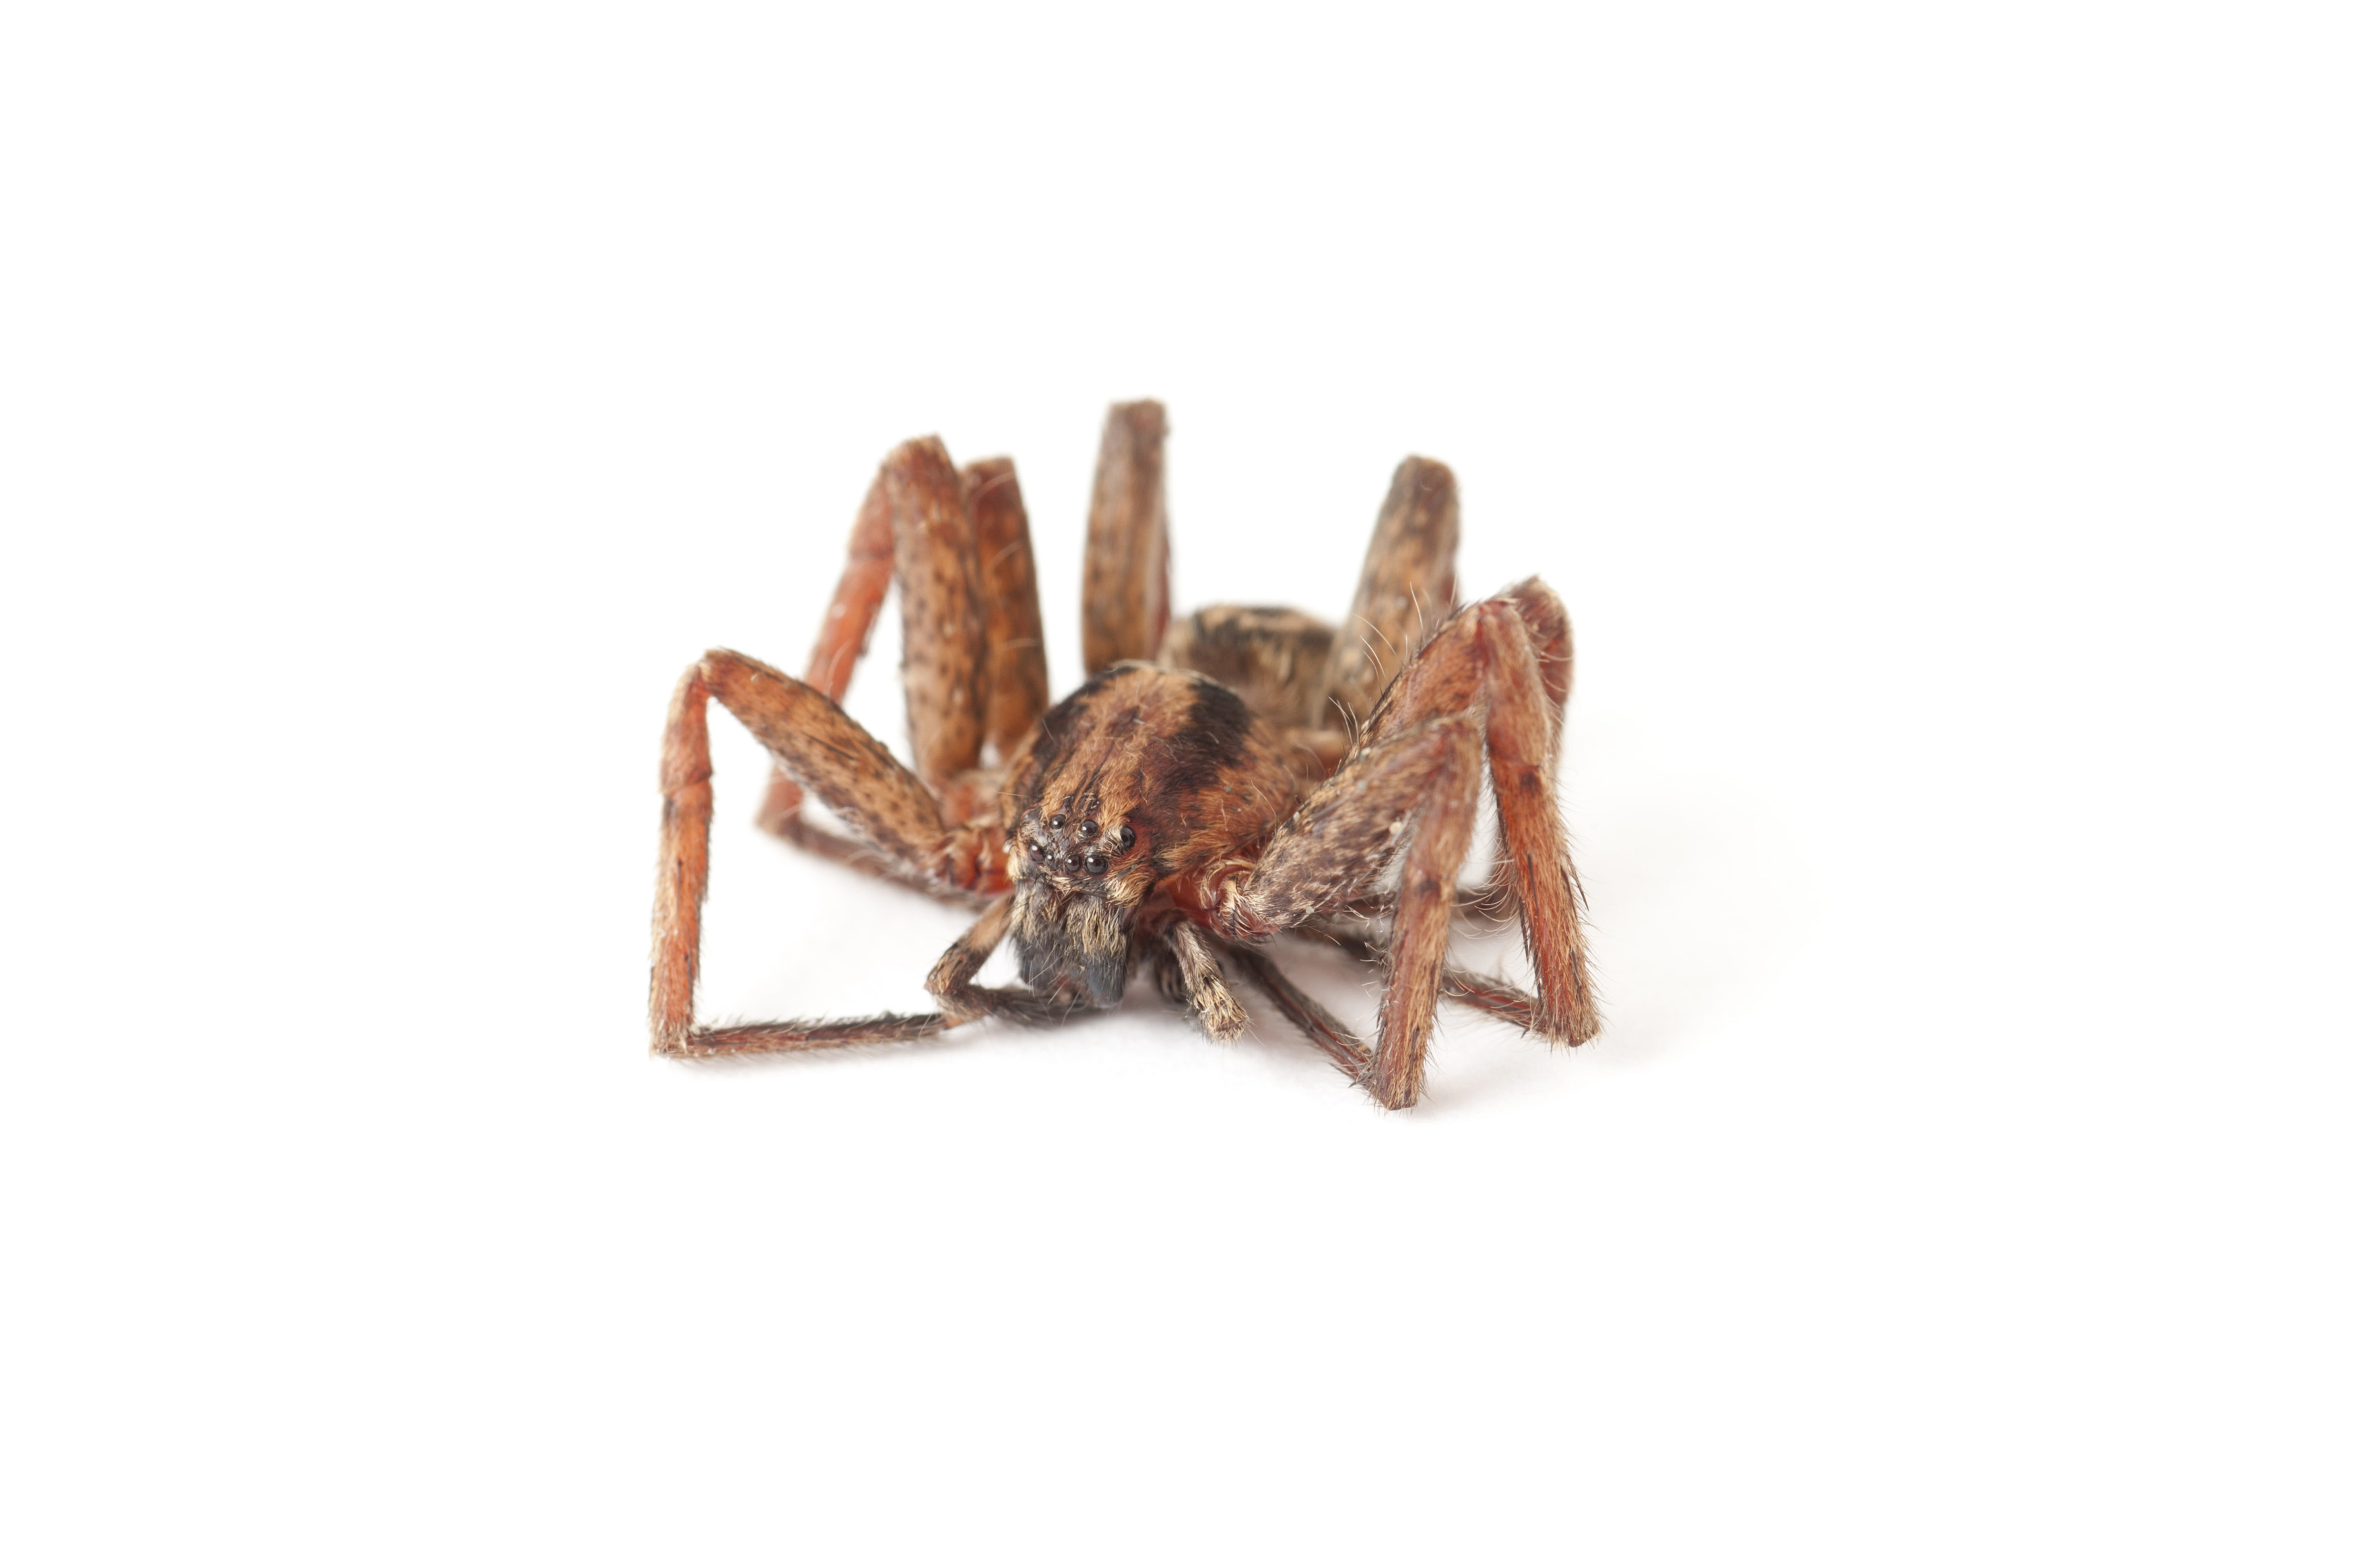 Macro of a spider on white with its legs folded up underneath itself showing its 8 eyes